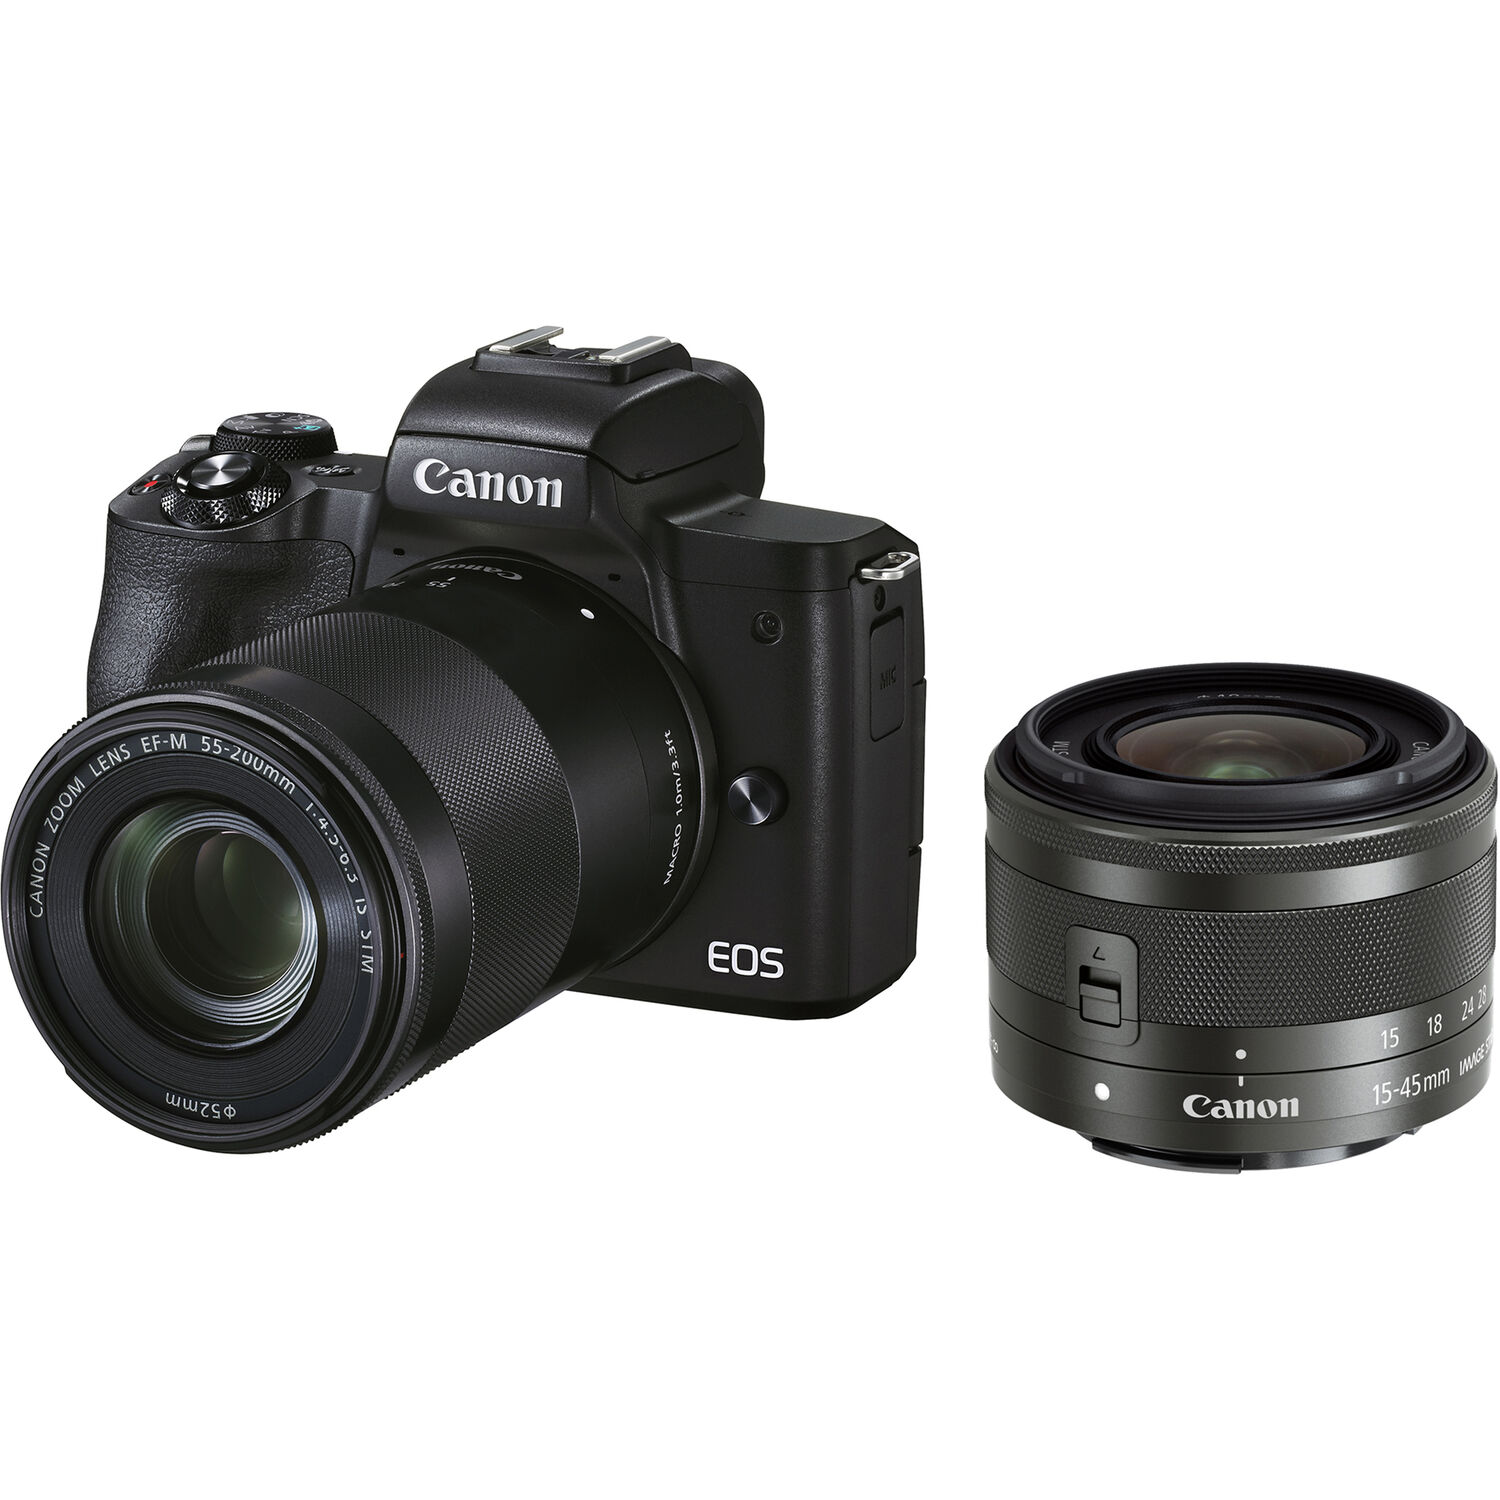 Canon EOS M50 Mark II Mirrorless Digital Camera with 15-45mm and 55-200mm Lenses (Black)